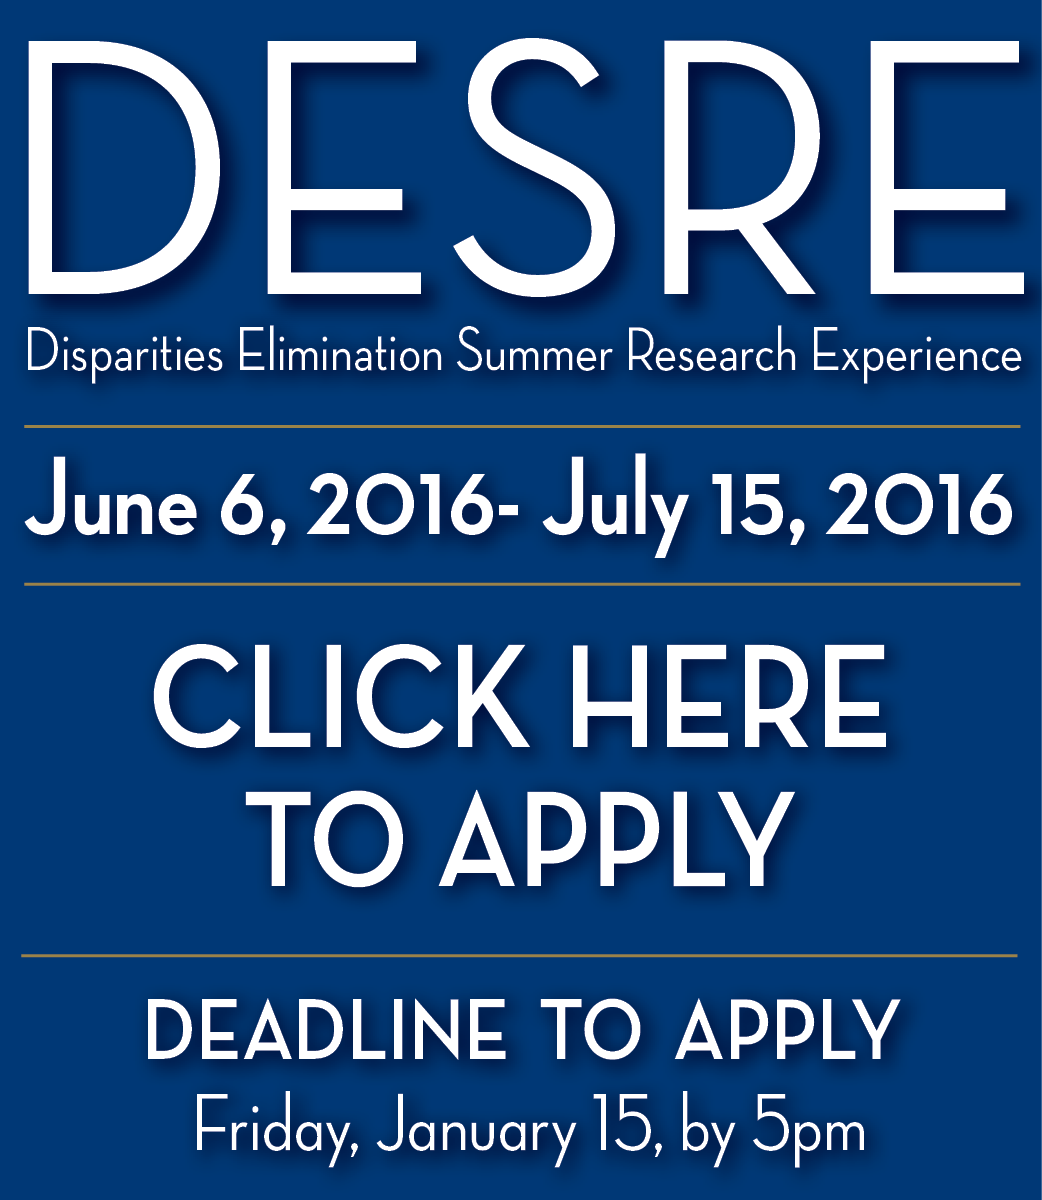 DESRE APPLY NOW!